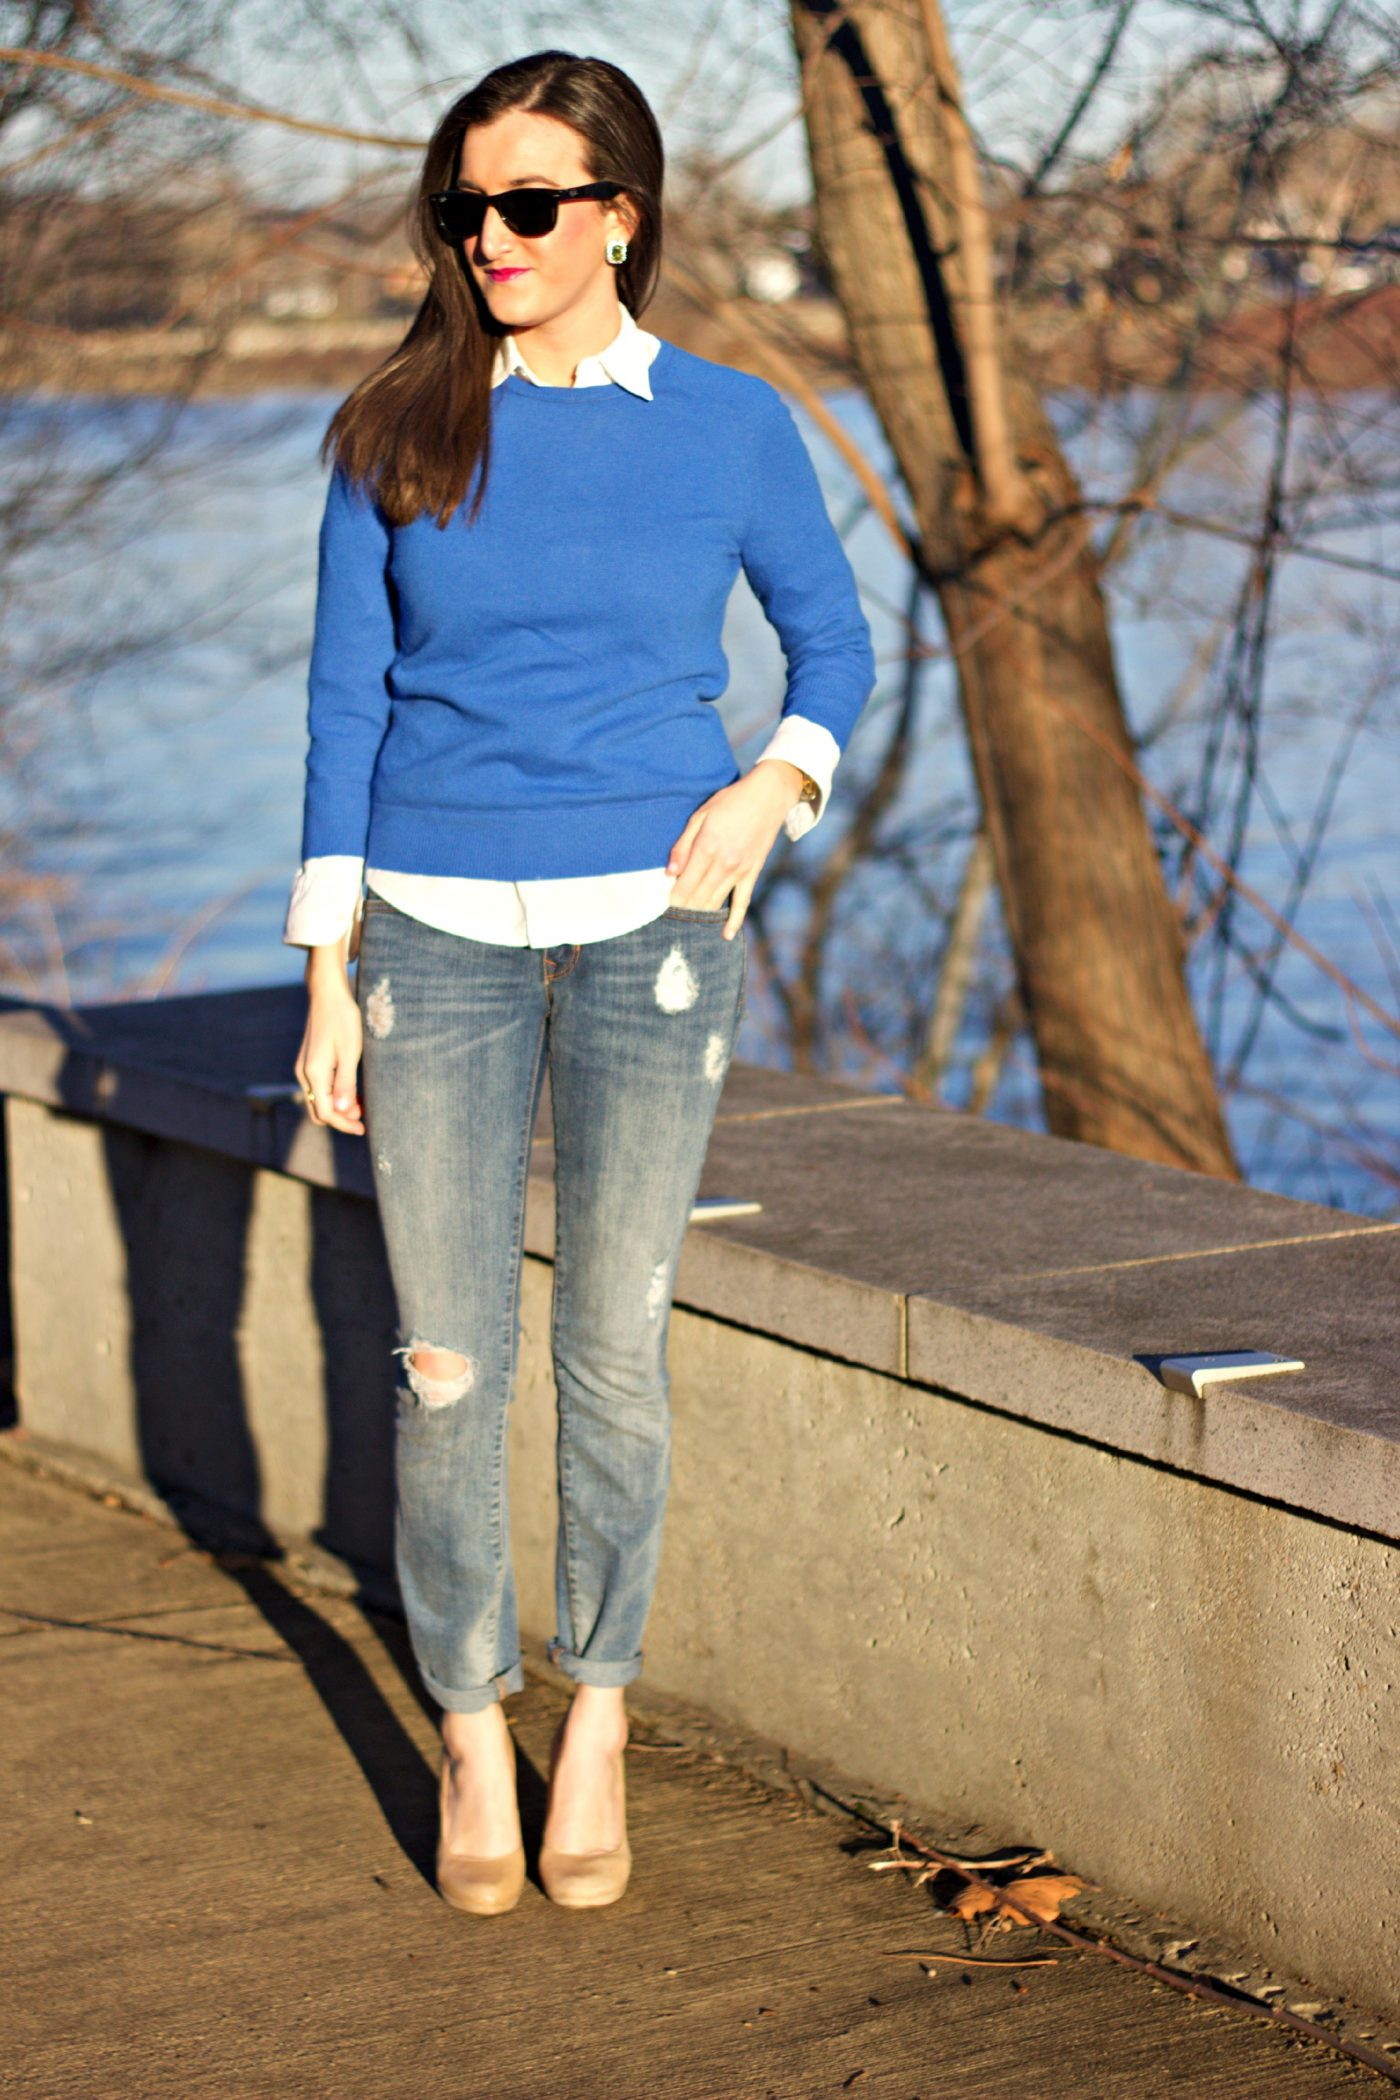 Layered Crewneck Sweater with White Blouse